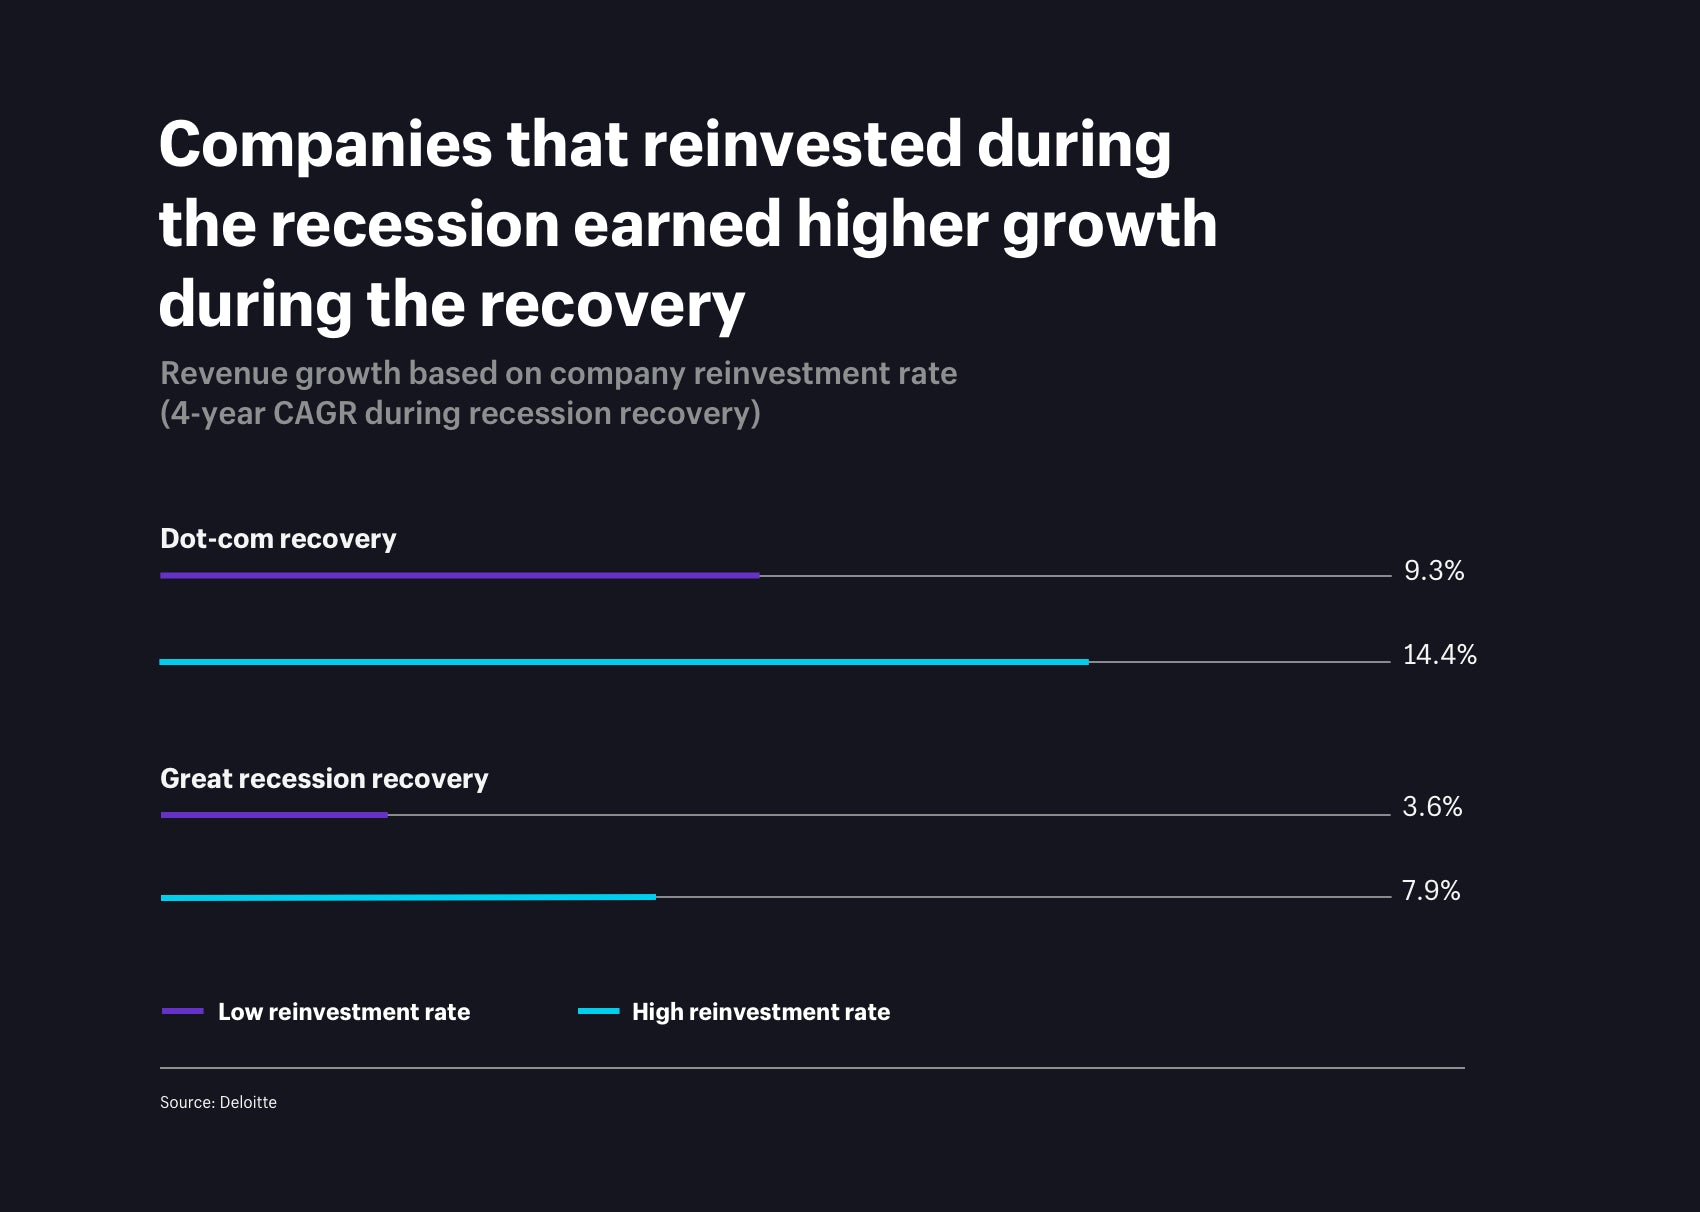 Companies that reinvested during the recession earned high growth during the recovery